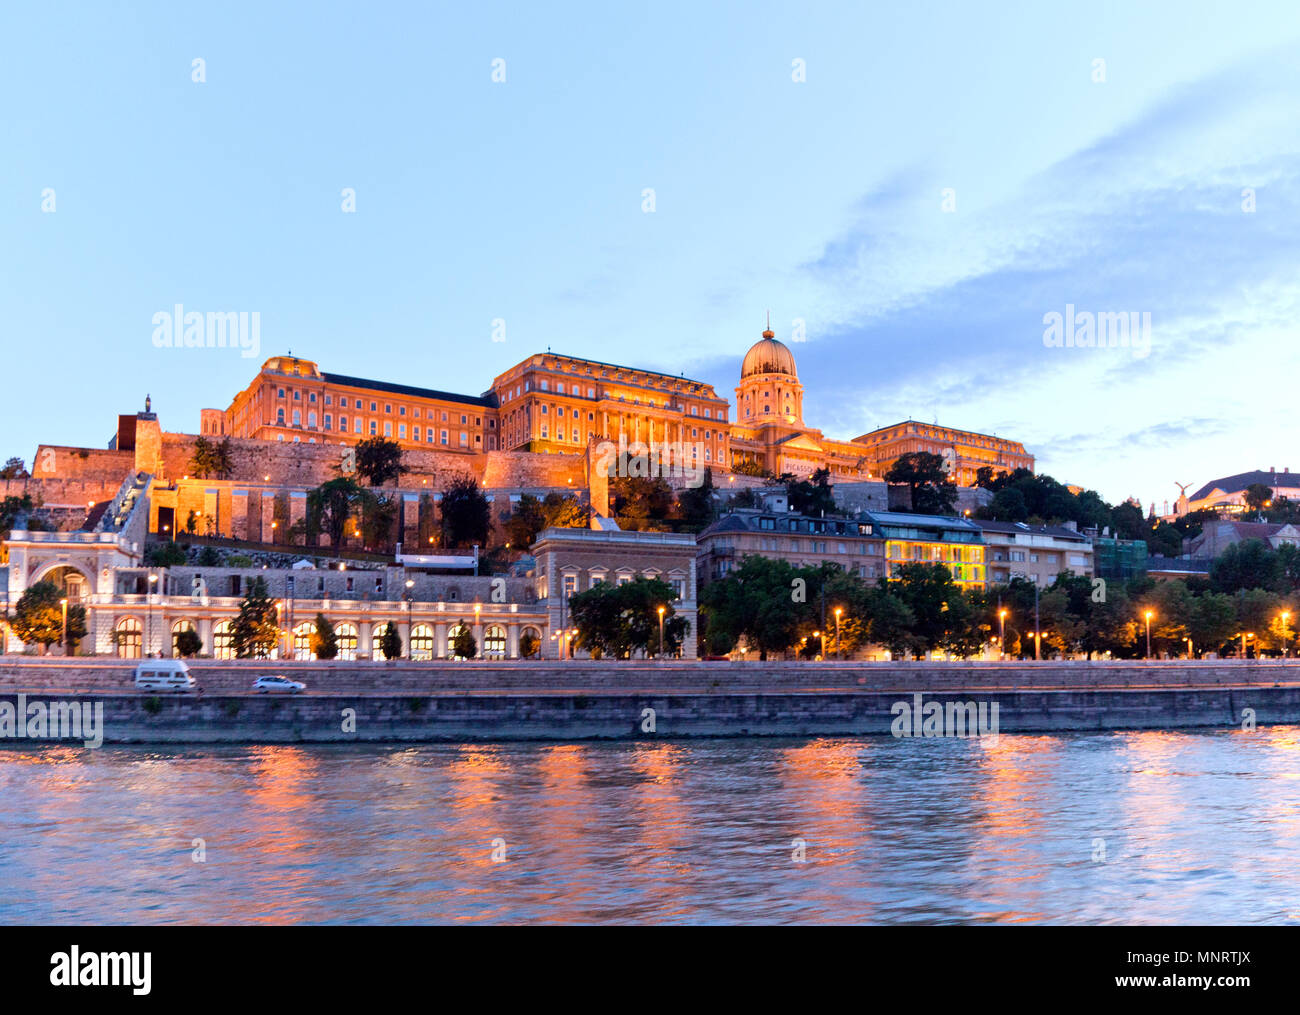 The Hungarian Royal Palace, now home to three museums, as seen at twilight from the Danube River, Budapest, Hungary. - Stock Image